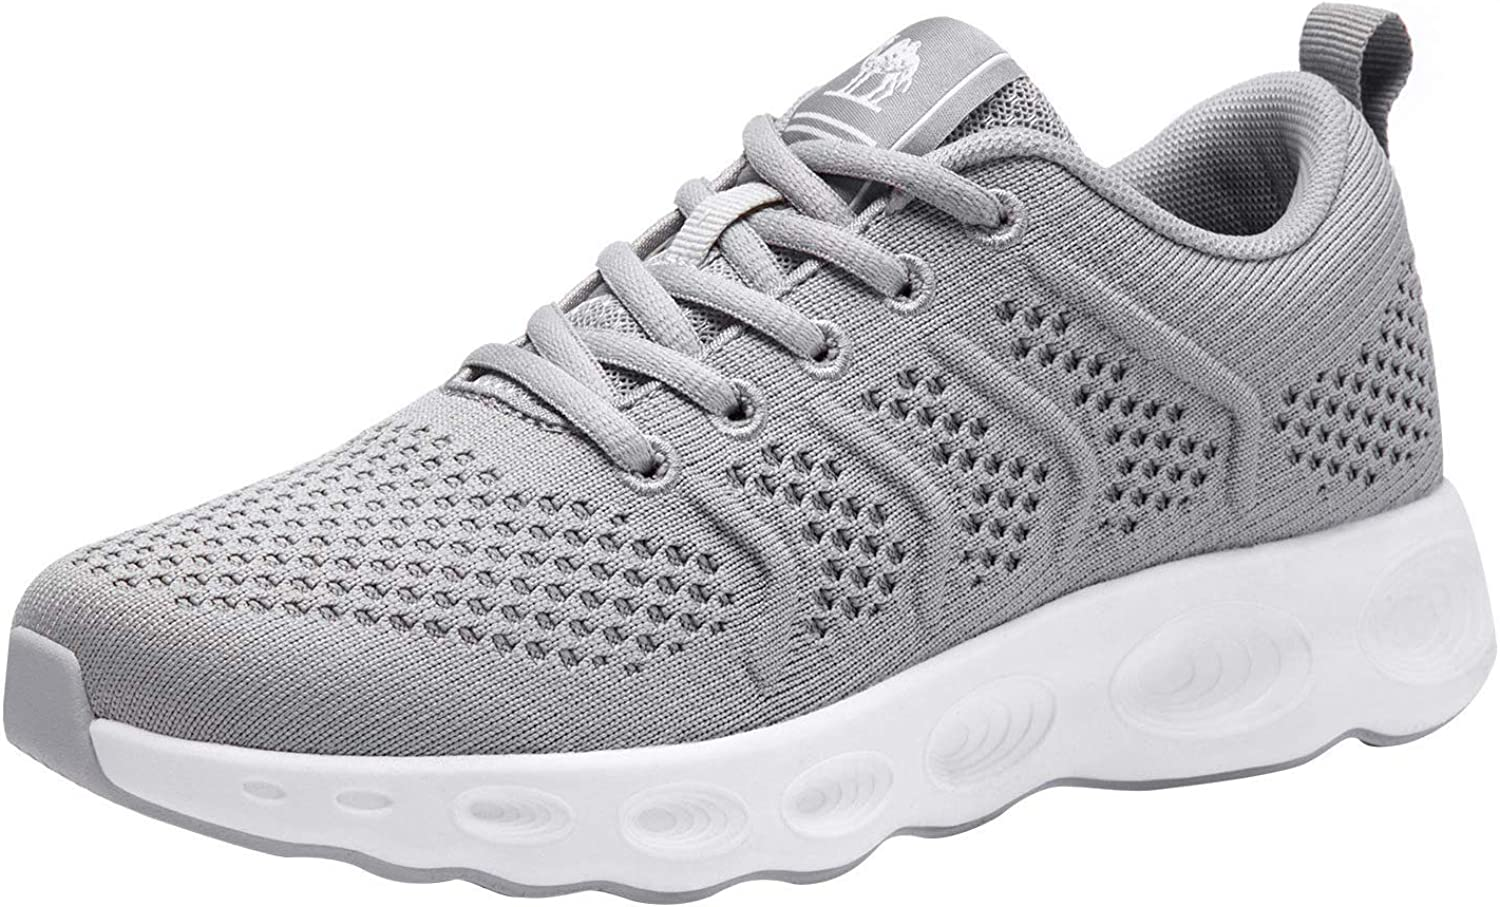 CAMEL CROWN Running Shoes Women Tennis Walking Trainning Trail Lightweight Comfortable Sneakers Athletic Gym Casual Footwear for Sports Outdoors Grey 6.5